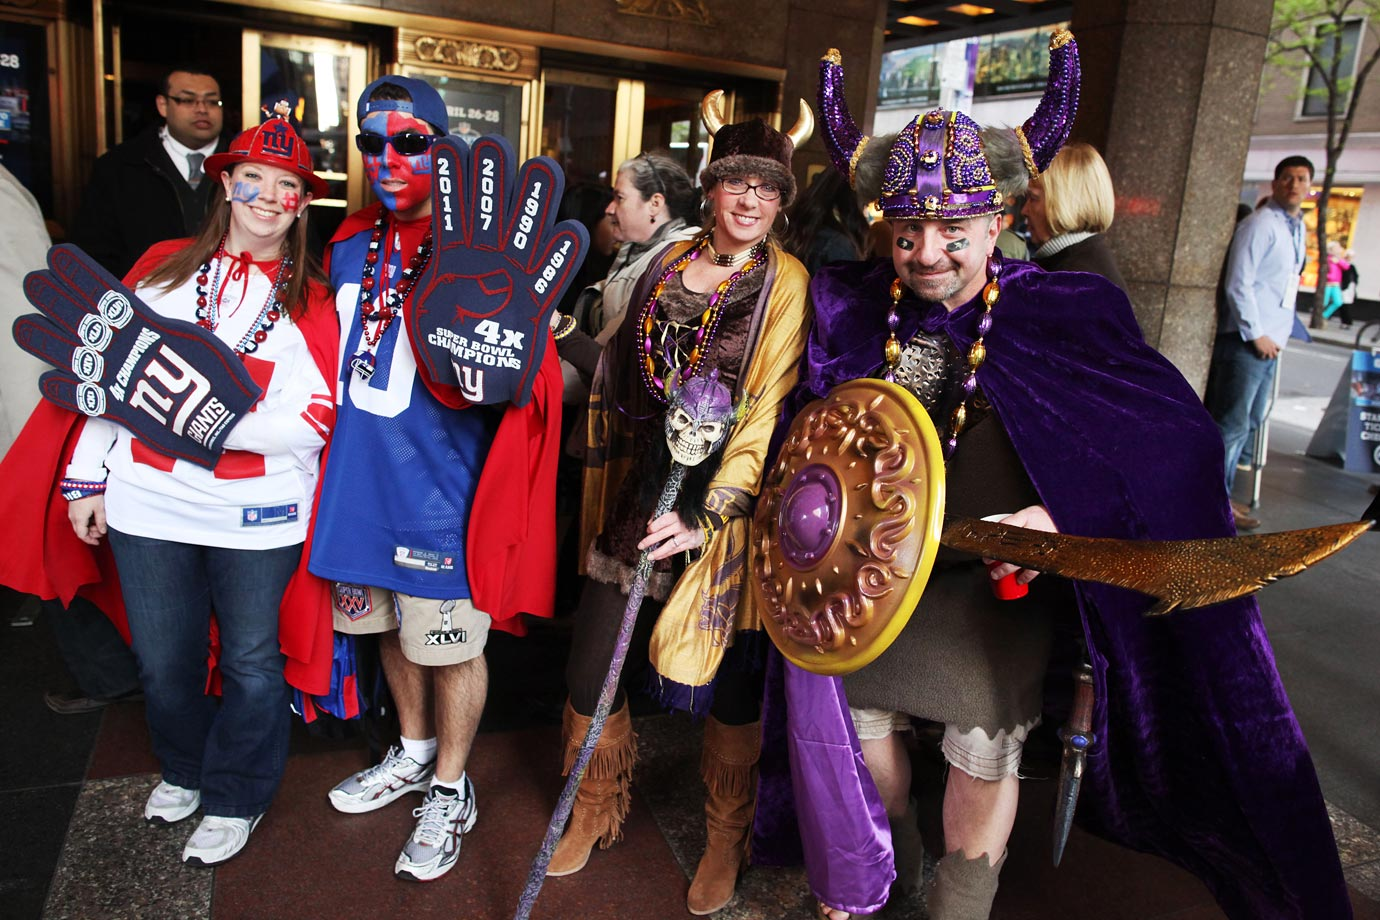 New York Giants and Minnesota Vikings fans in 2012.